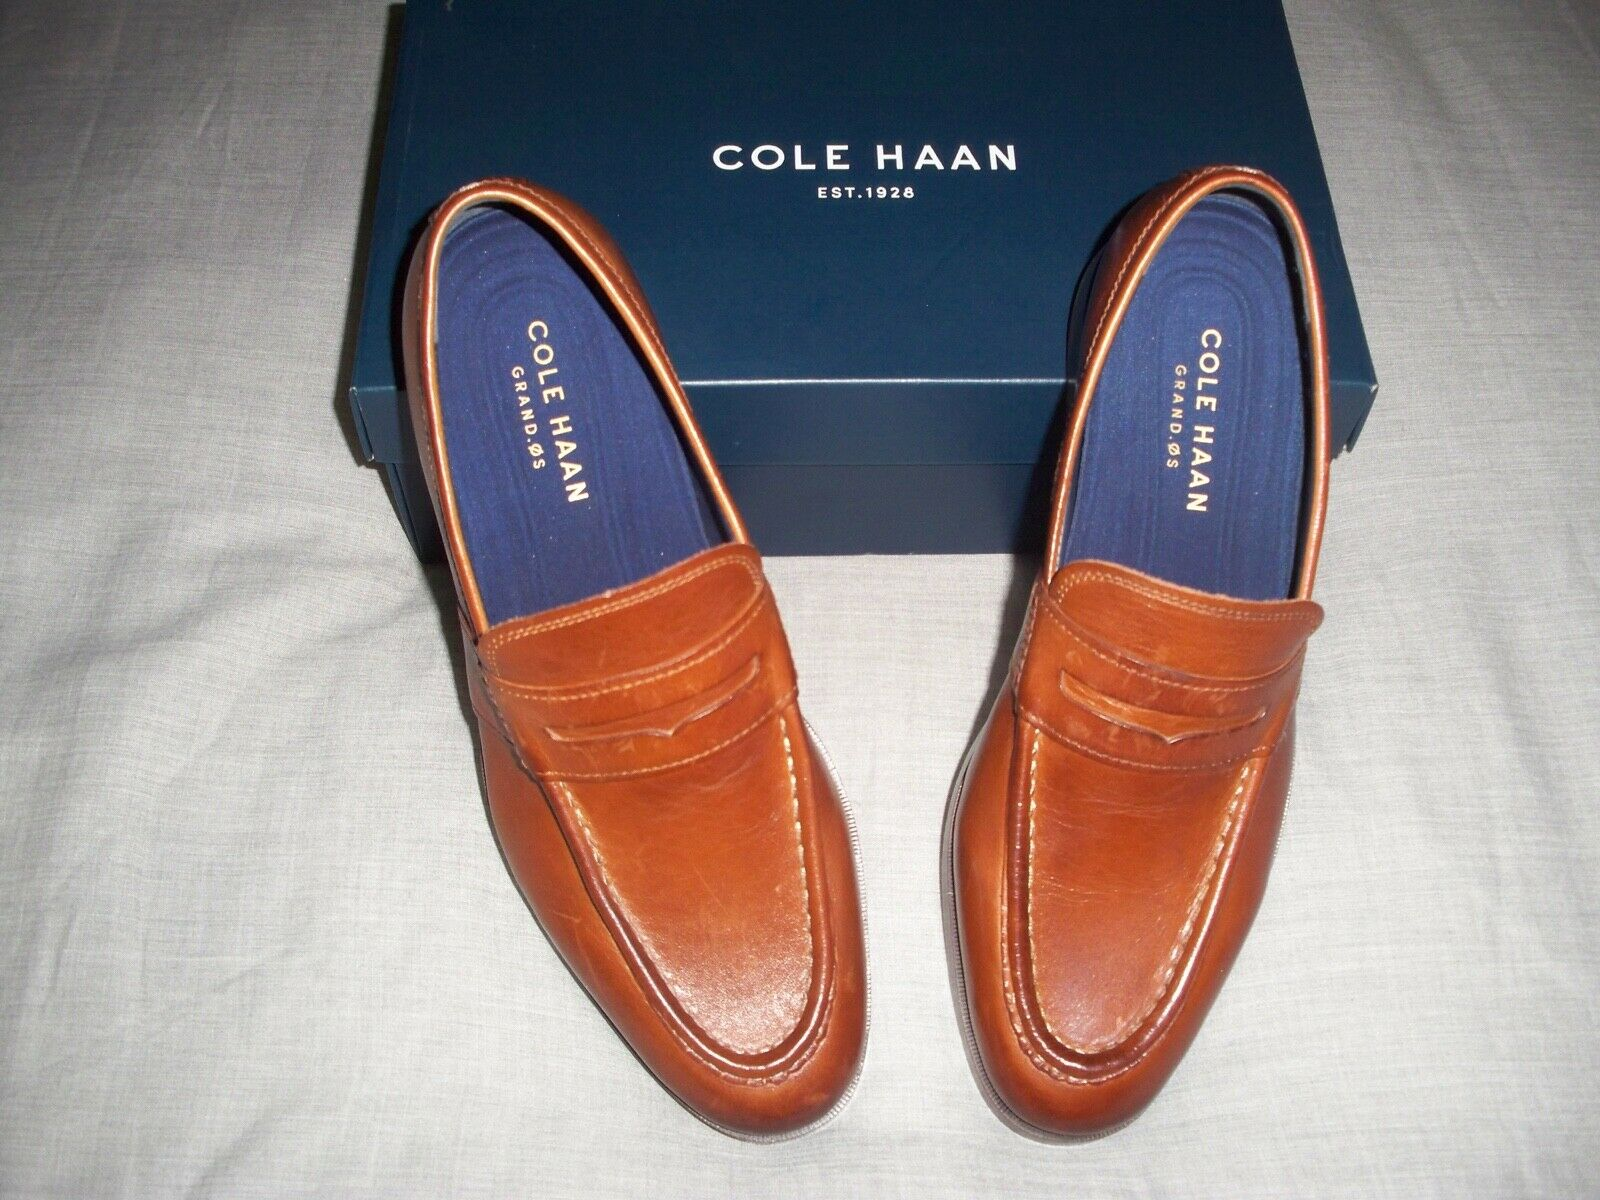 COLE HAAN MEN'S CLASSIC PENNY LOAFERS - 8.5 WIDE